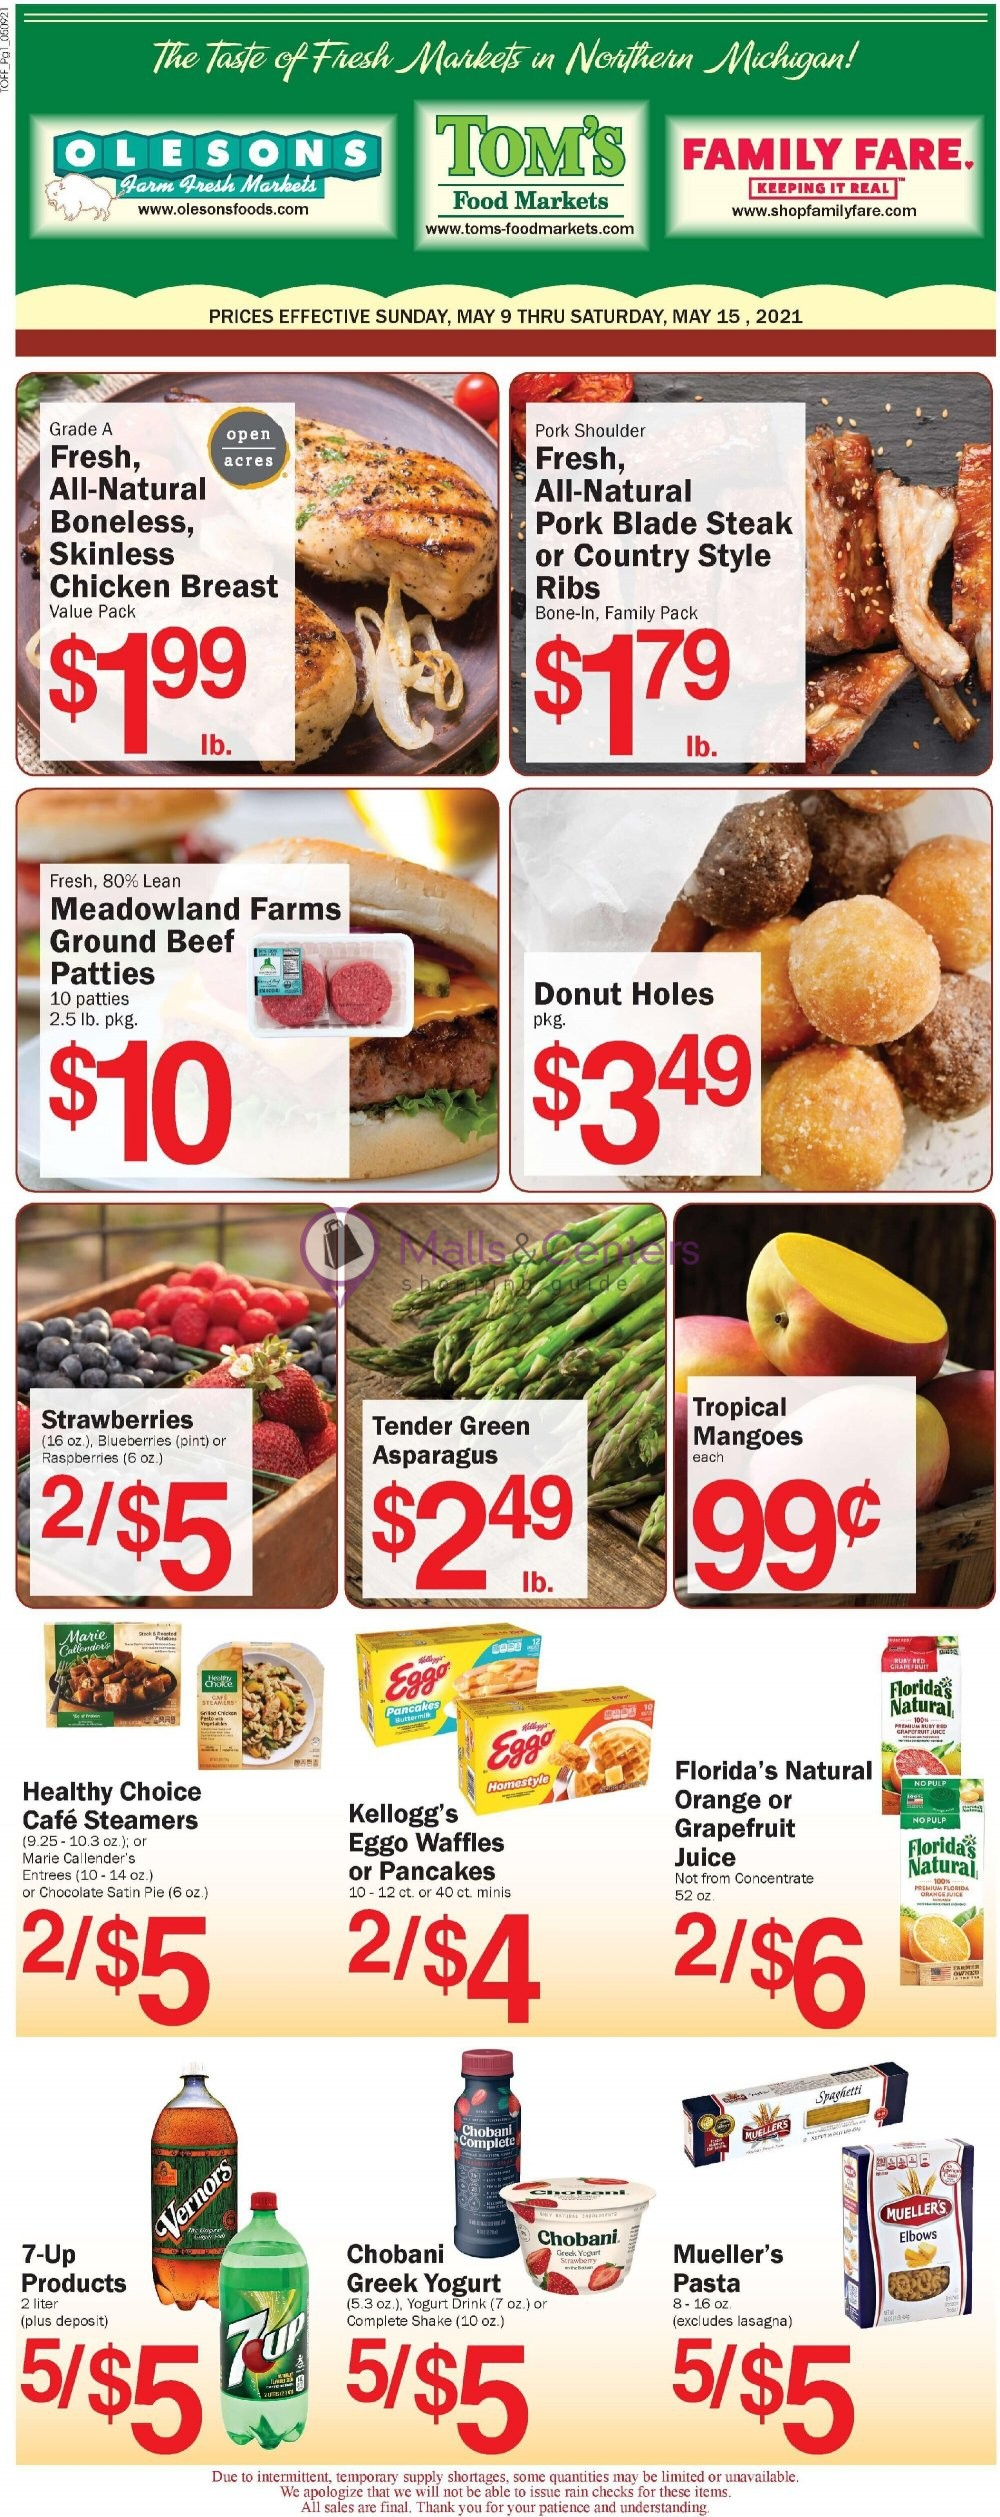 weekly ads Tom's Food Markets - page 1 - mallscenters.com